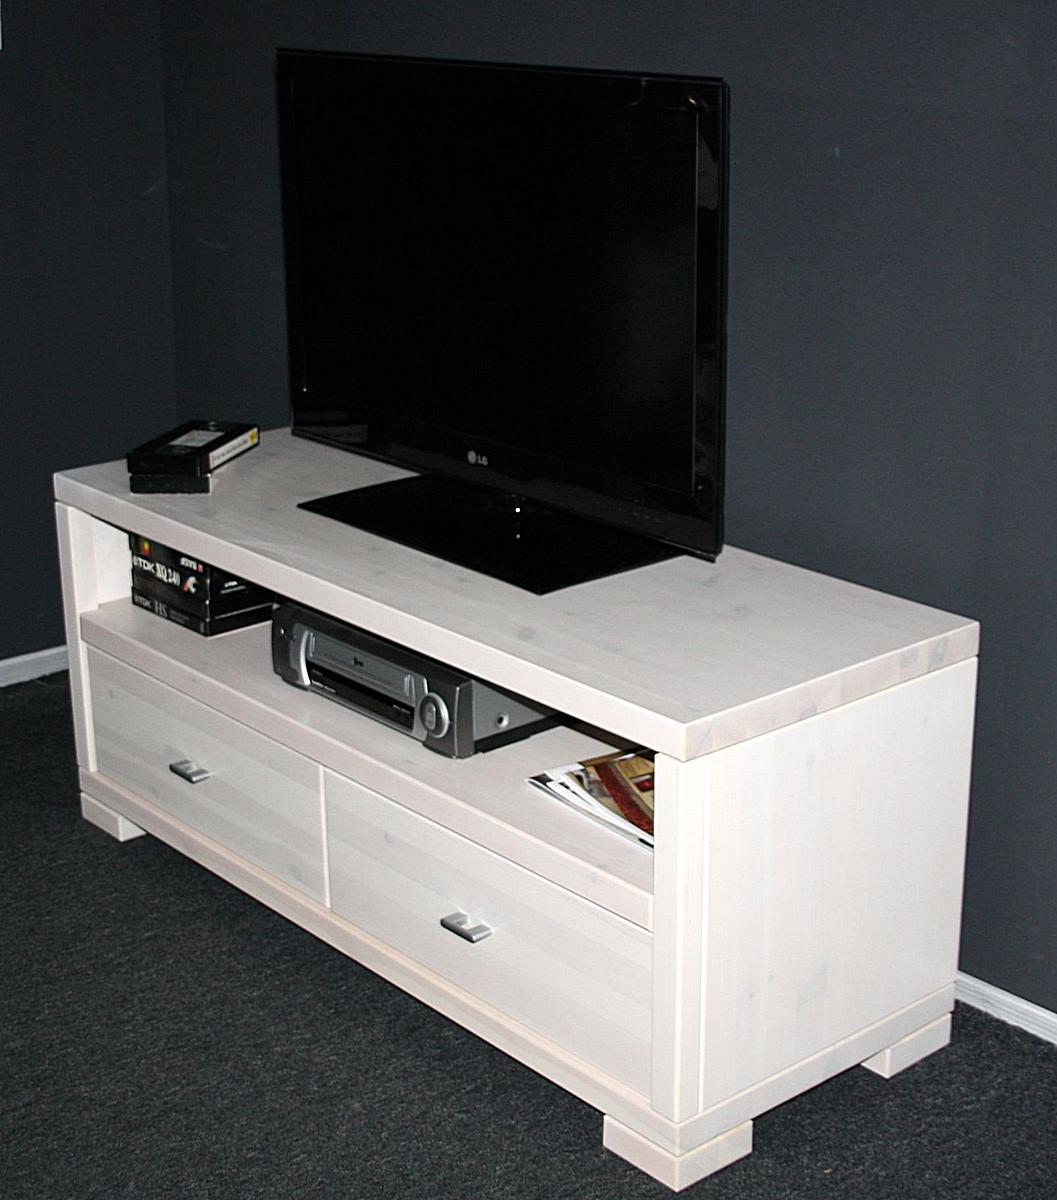 massivholz tv lowboard 120 guldborg kiefer massiv wei lasiert. Black Bedroom Furniture Sets. Home Design Ideas